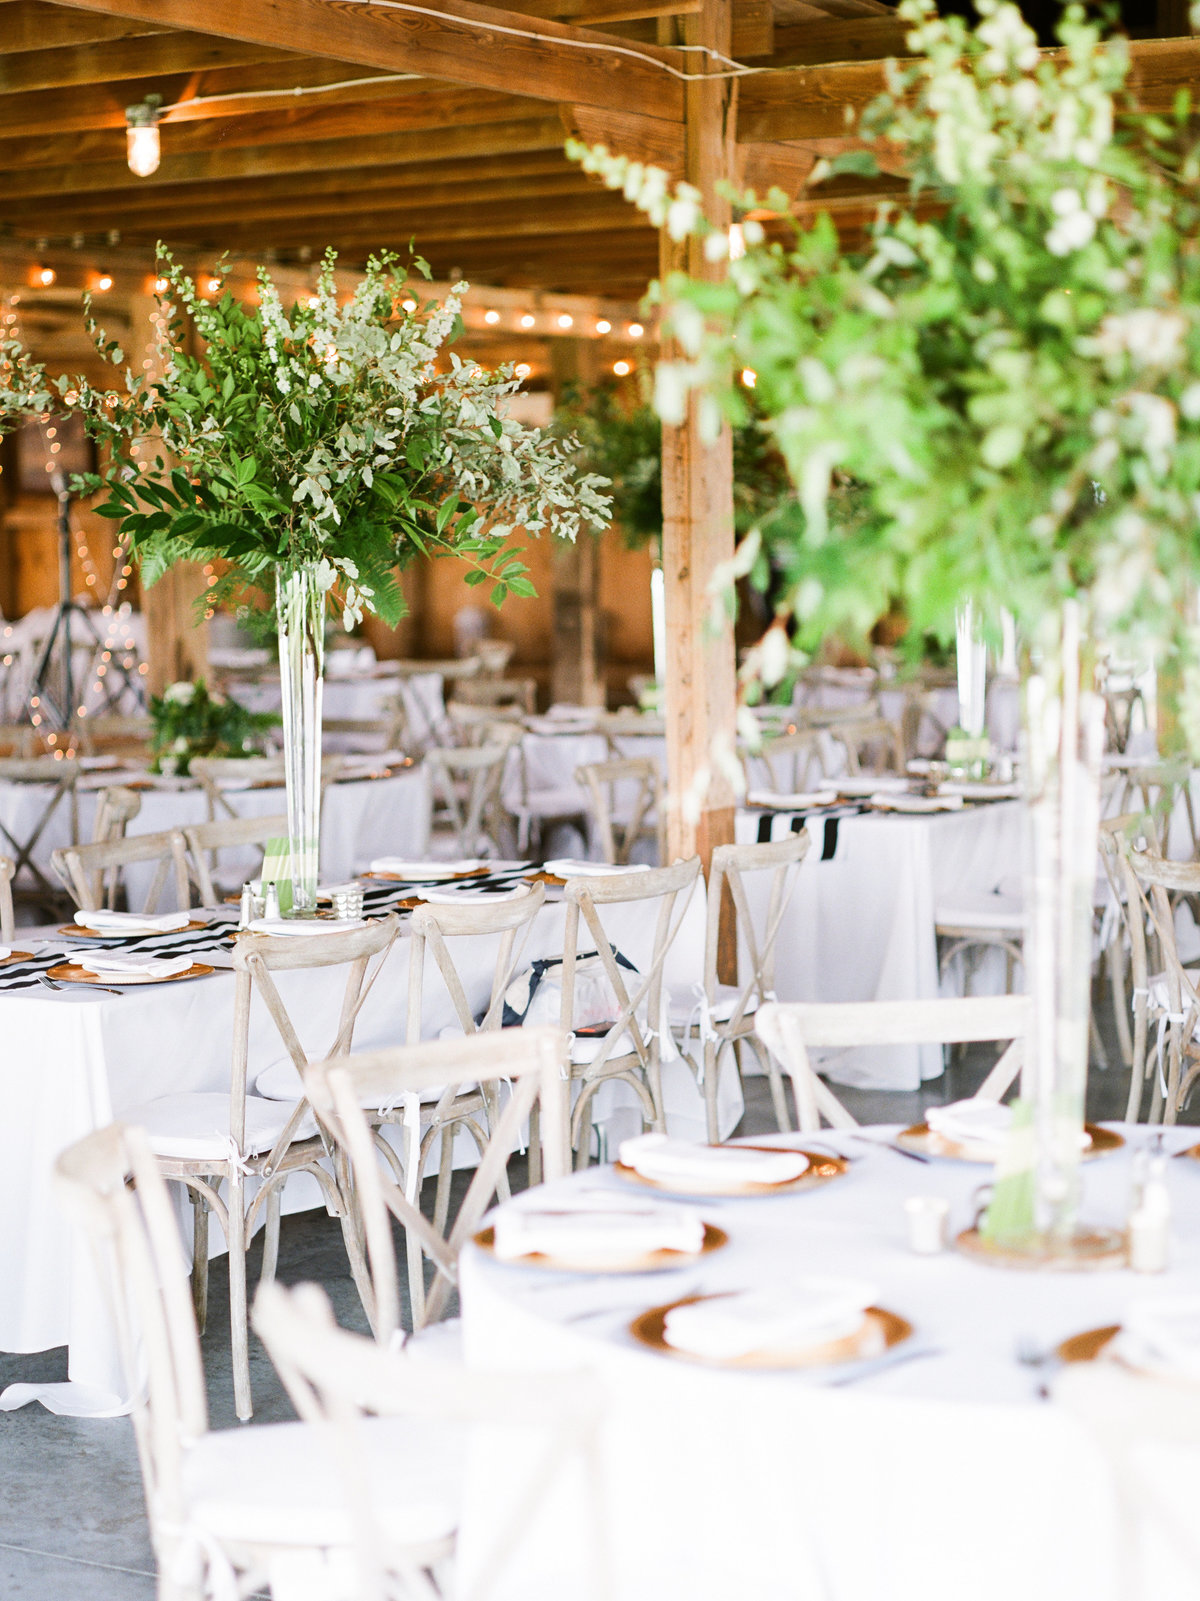 Pretty Prairie Farm Ohio wedding greenery centerpieces